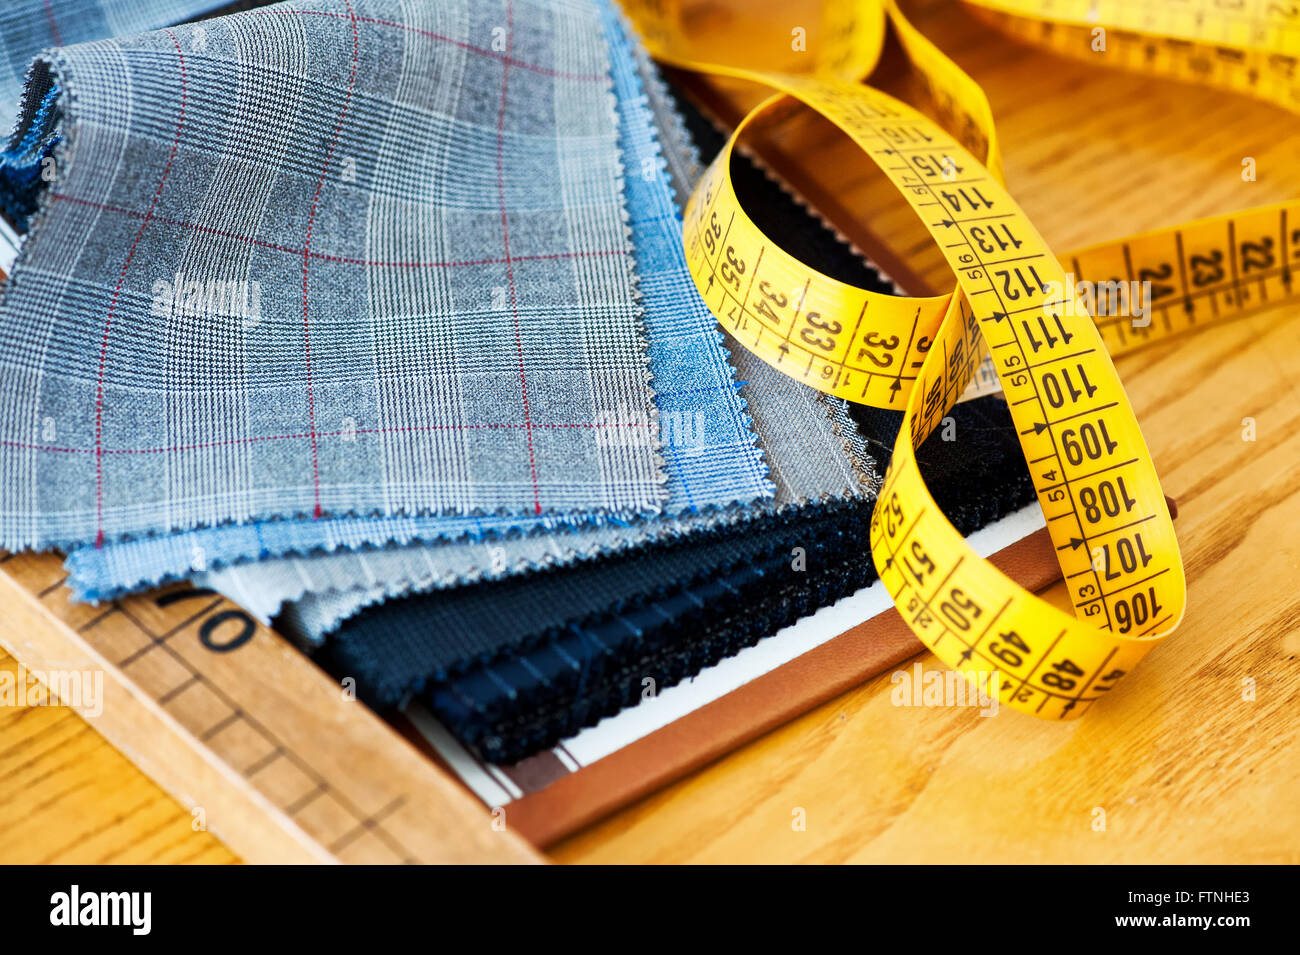 Sample fabric swatches on a tailors workbench with a yellow tape measure showing the tools of the trade in a close - Stock Image